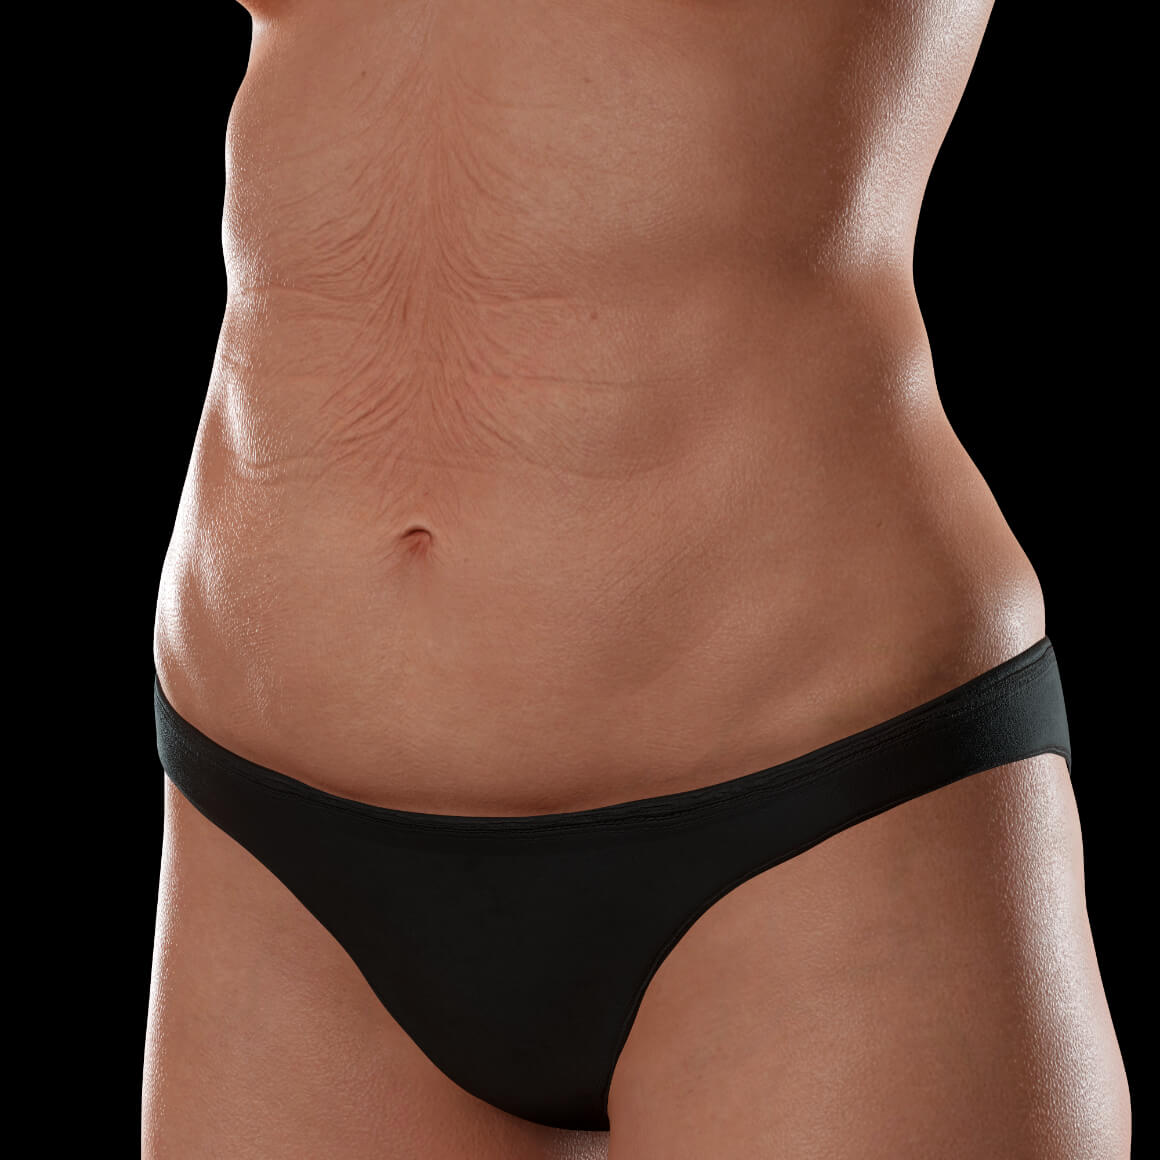 Angled Clinique Chloé female patient showing body skin laxity on her abdomen